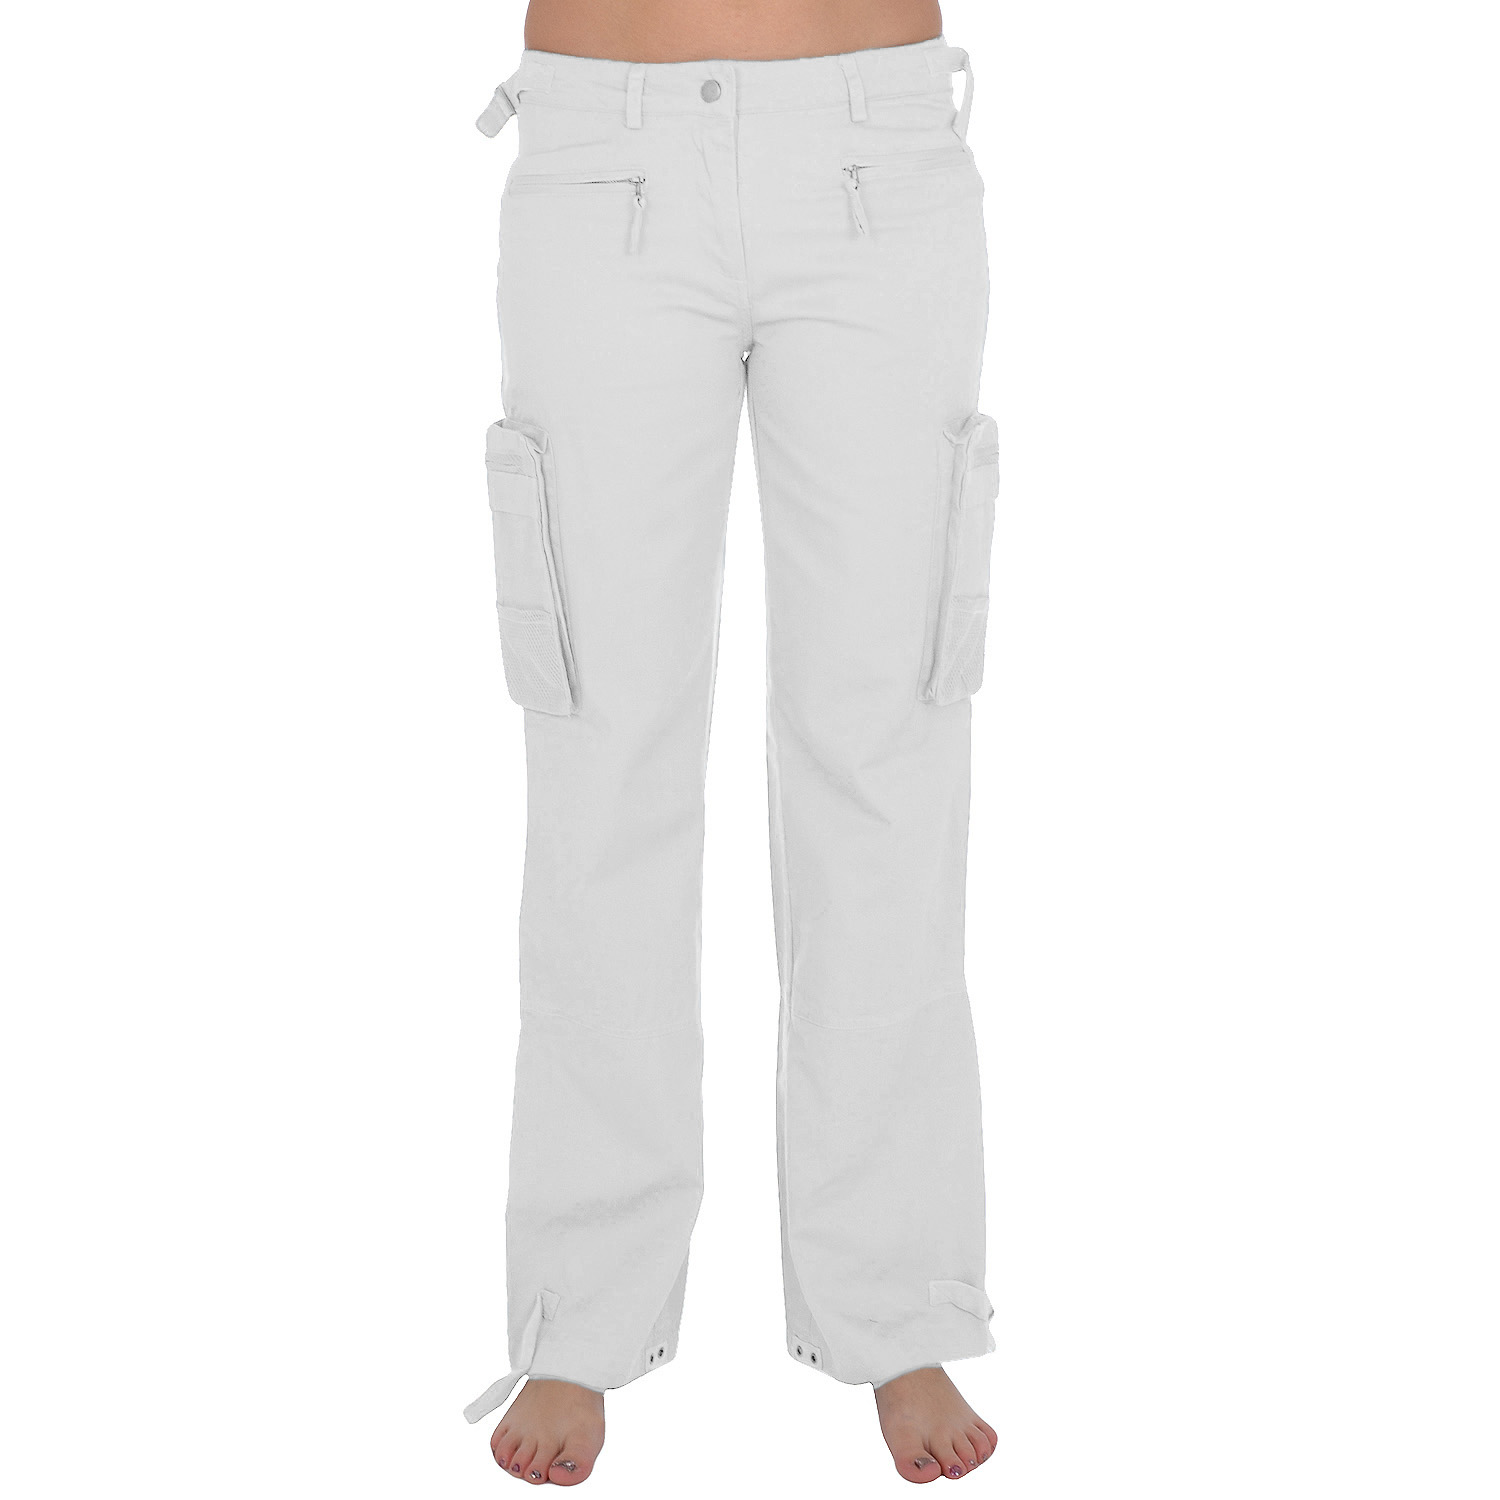 Miss-Posh-Womens-Ladies-Cargo-Combat-Boyfriend-Trousers-Pants-Bottoms